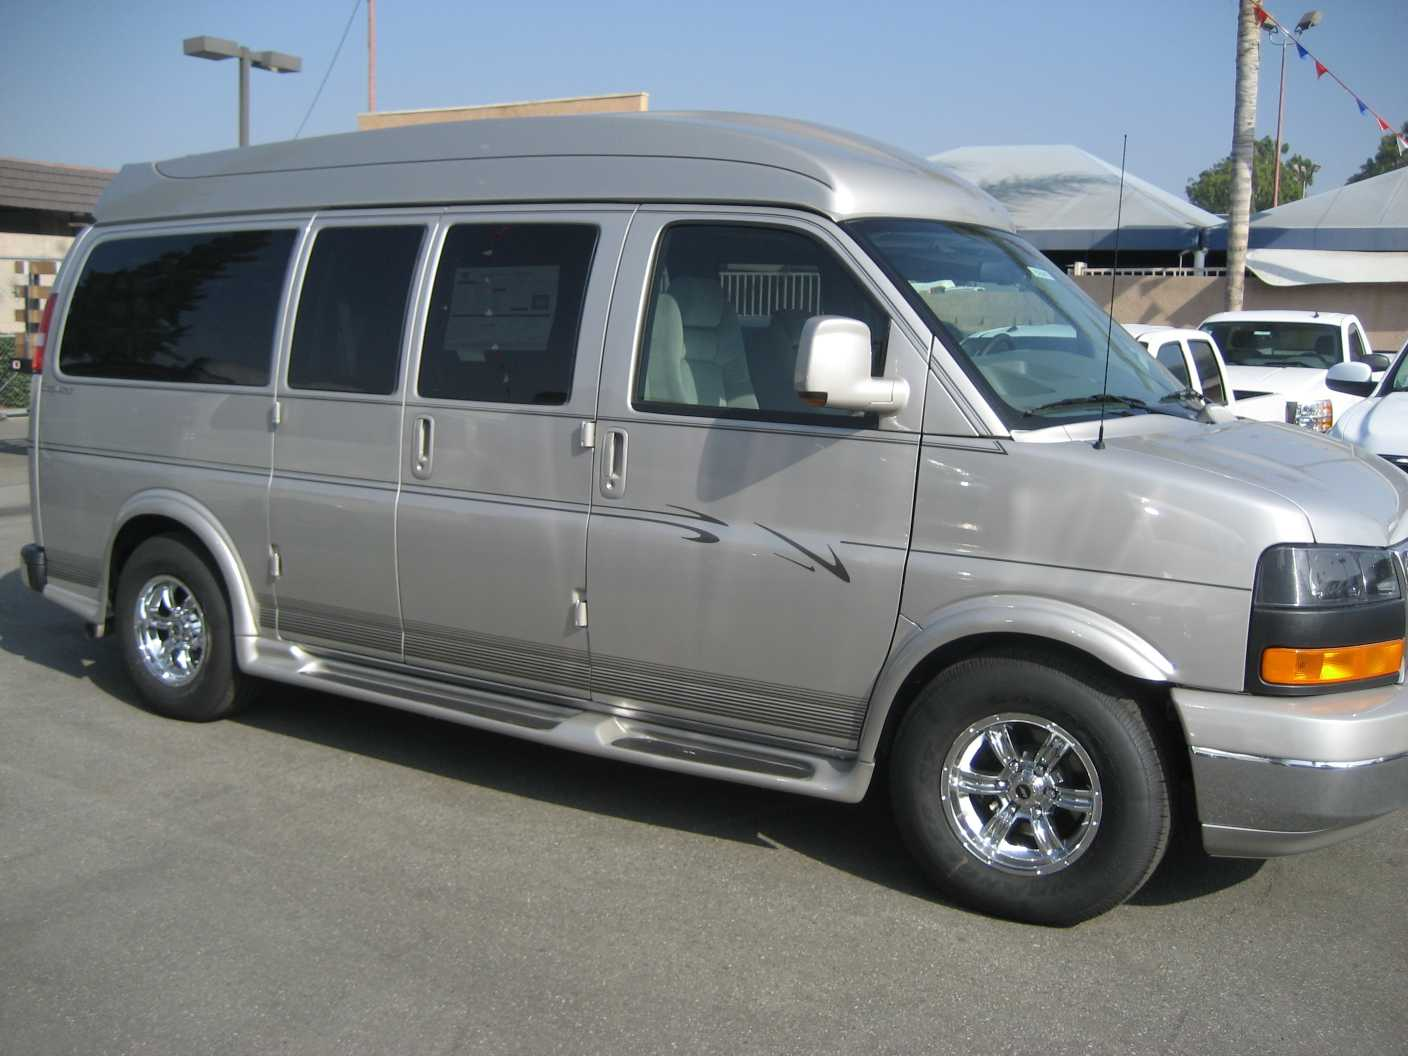 used gmc savana conversion vans for sale by owner in autos weblog. Black Bedroom Furniture Sets. Home Design Ideas